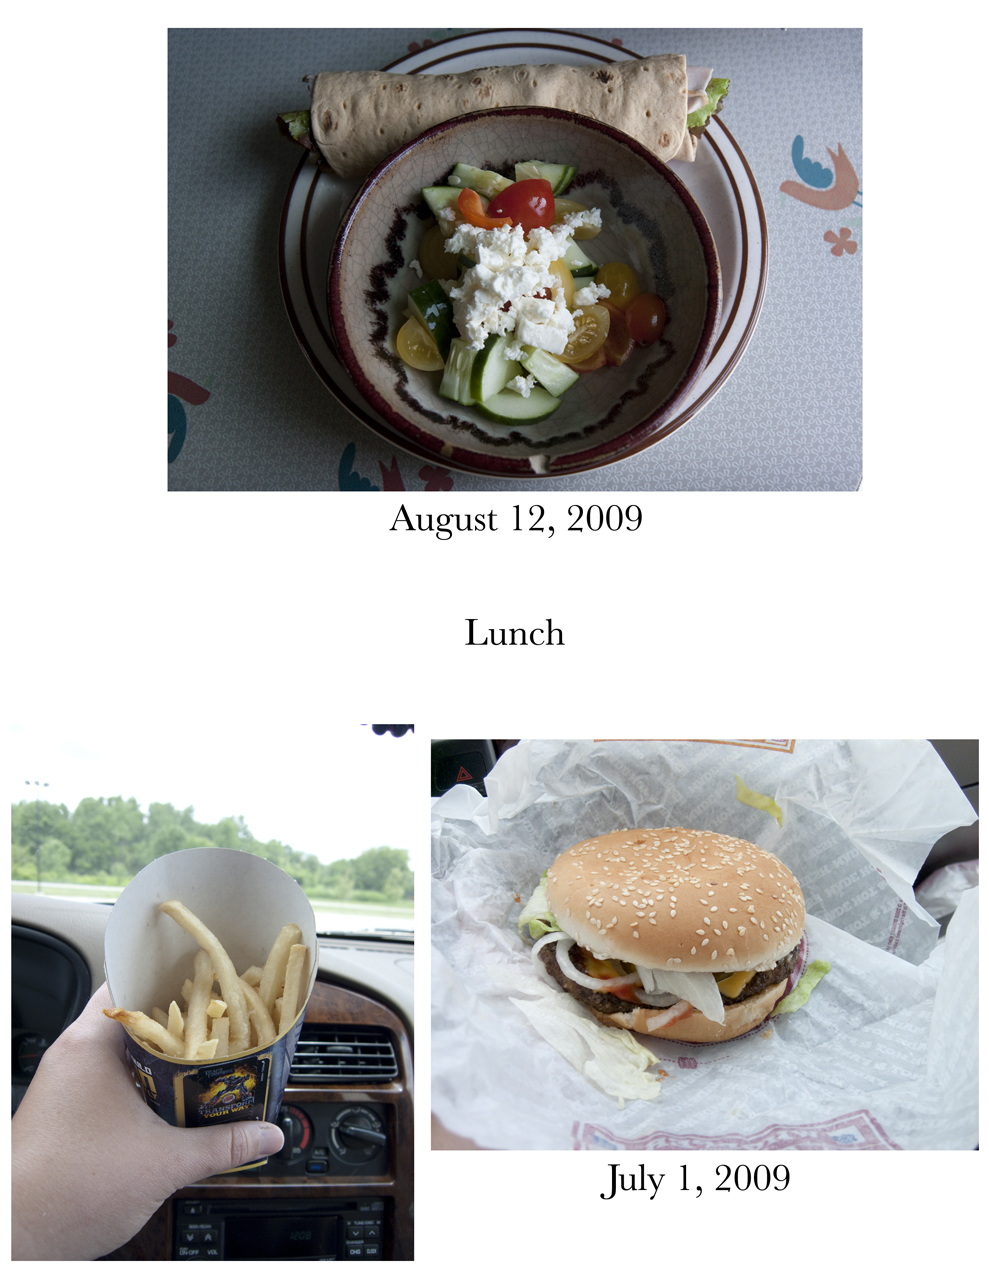 Lunch; Meal Comparison